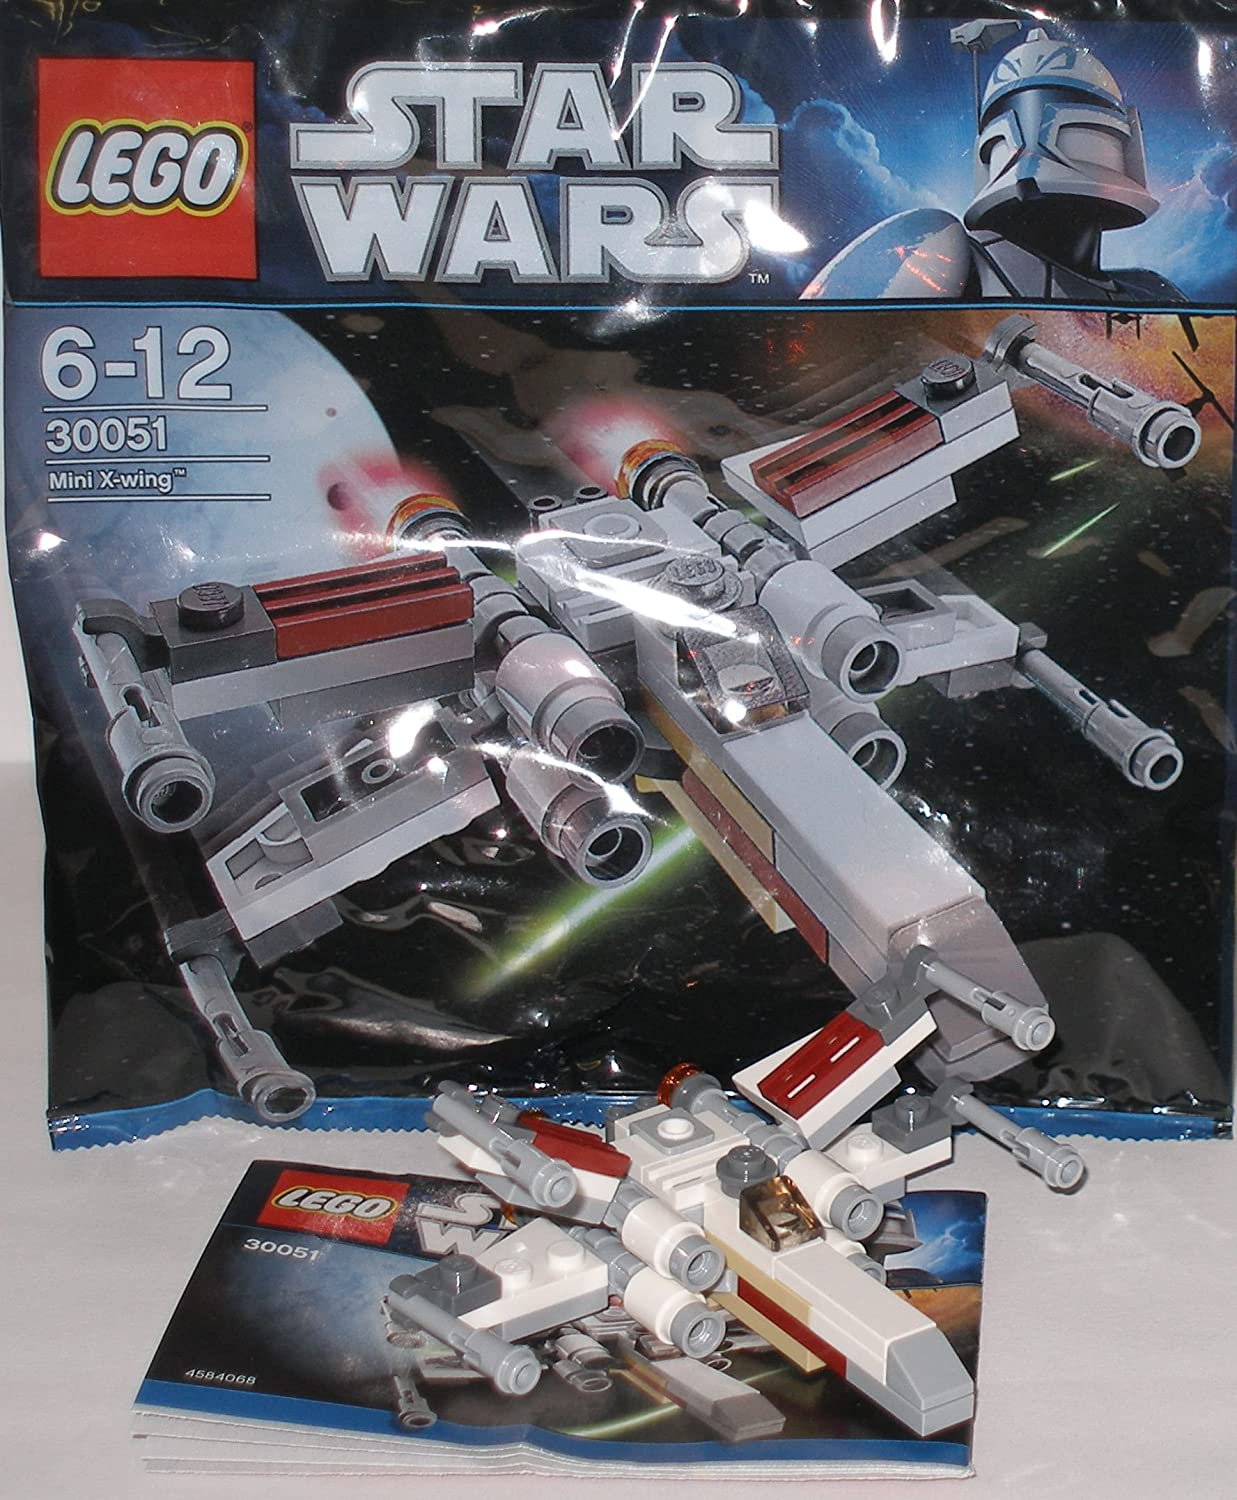 LEGO Star Wars Exclusive Mini Building Set #30051 XWing Starfighter Bagged